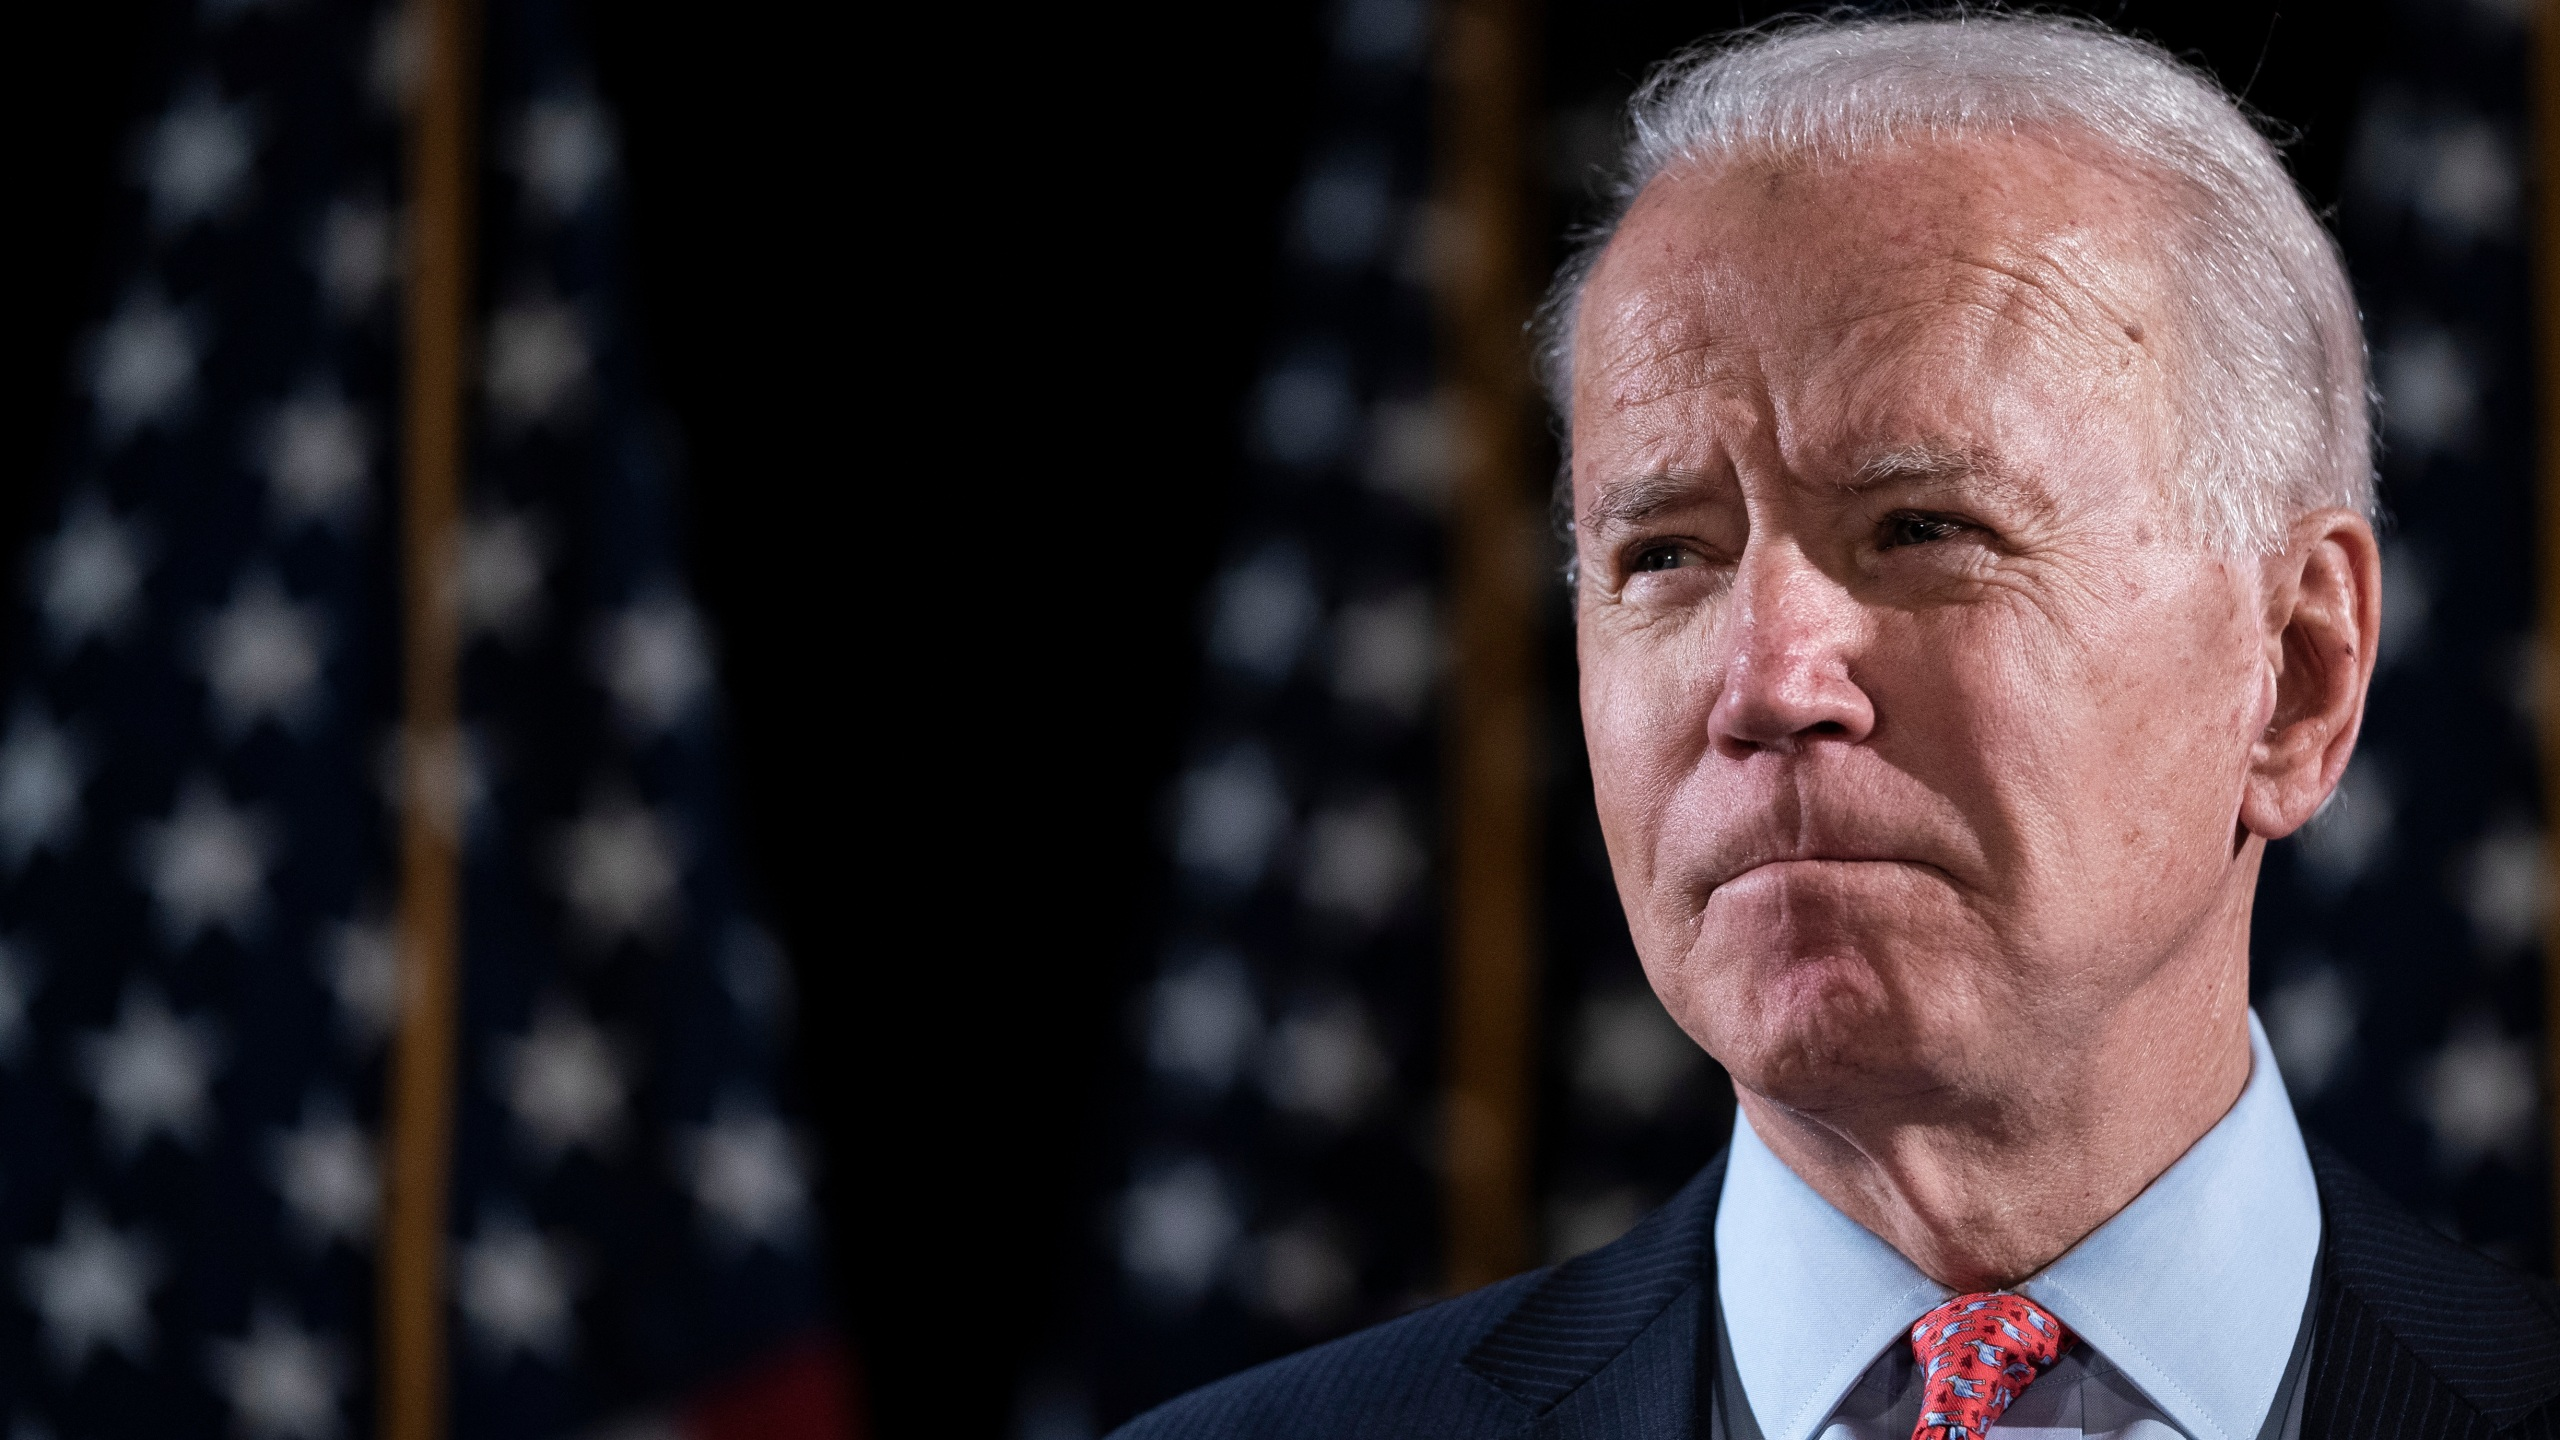 Democratic presidential candidate former Vice President Joe Biden delivers remarks about the coronavirus outbreak, at the Hotel Du Pont March 12, 2020, in Wilmington, Delaware. (Drew Angerer/Getty Images)